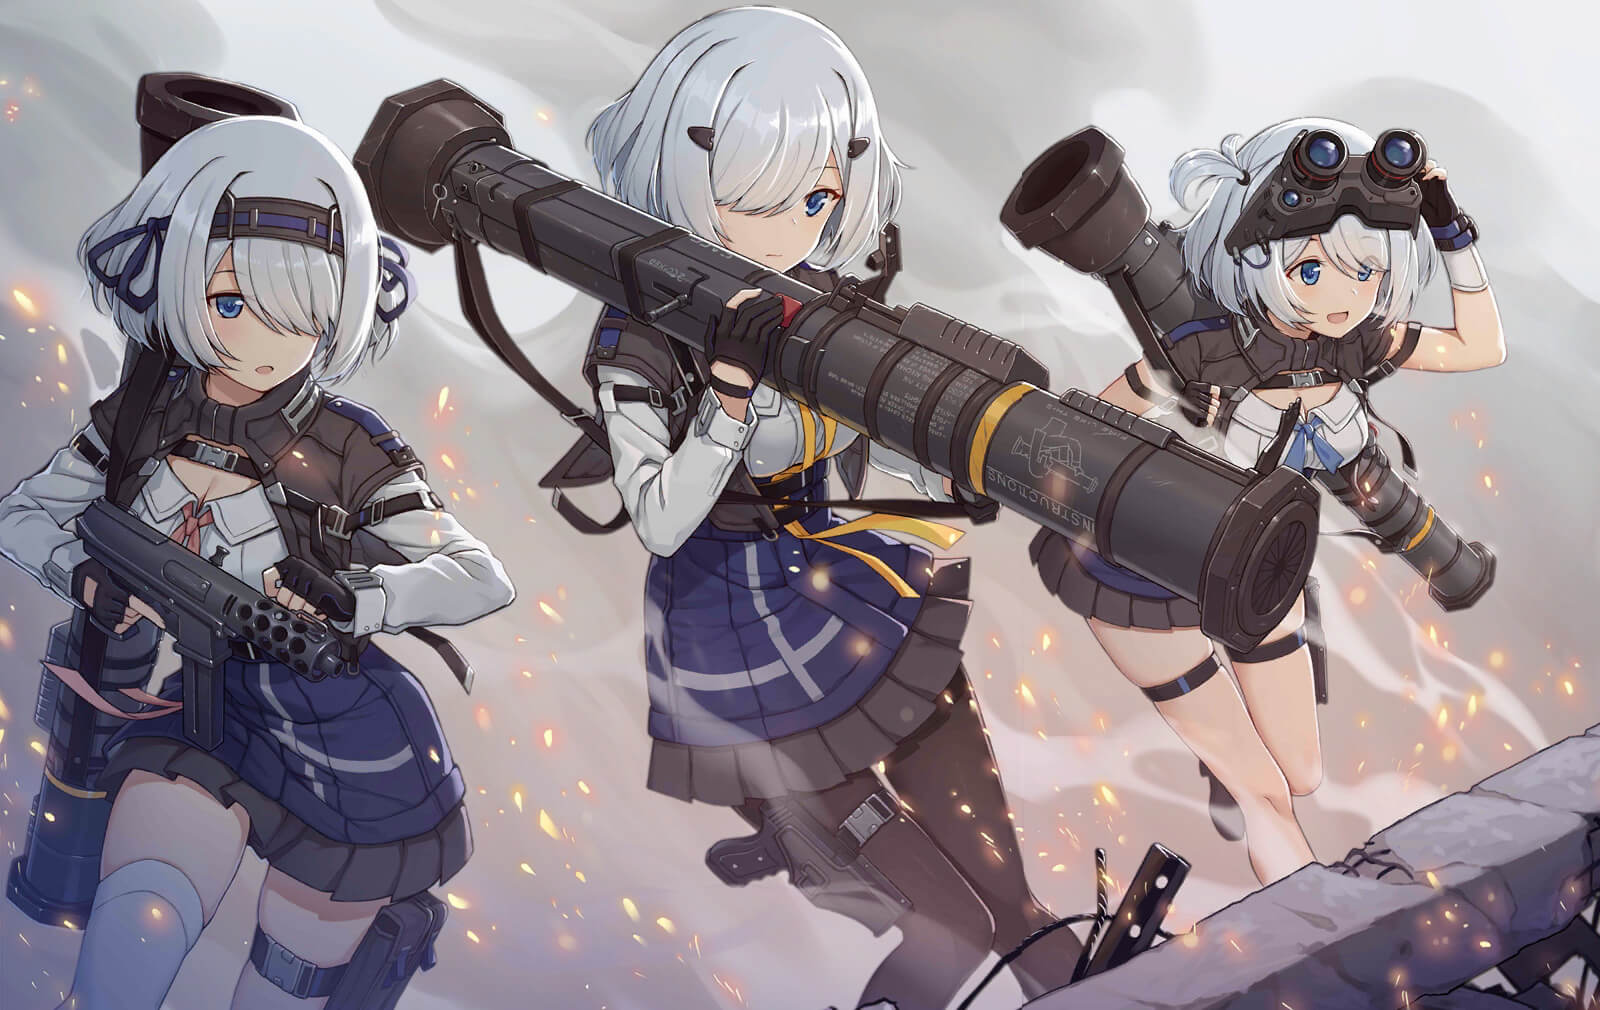 Full in-game art for the AT4 HOC unit in Girls' Frontline